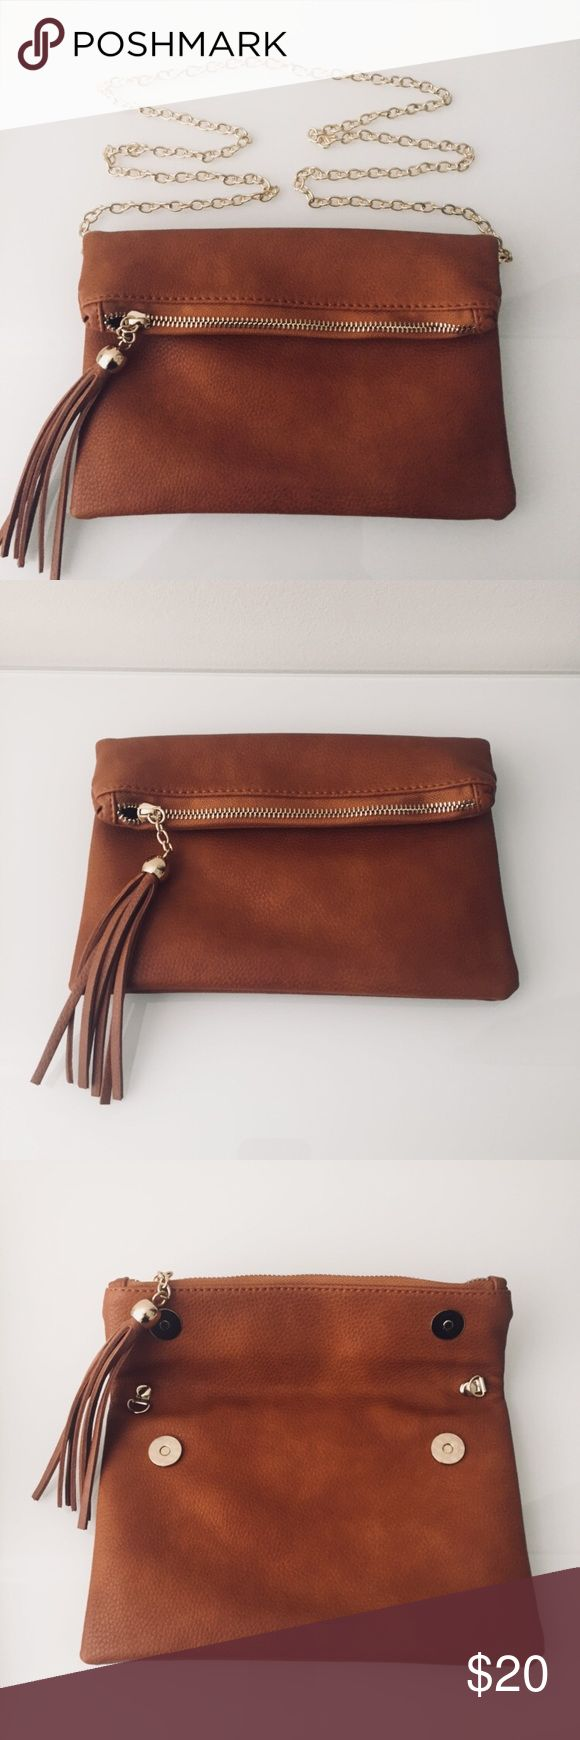 Brown Clutch Great brown clutch purse with gold shoulder strap attachment.  Lots of room and very secure with zipper and fold over design.   Practically brand new, only used once  Stitch Fix accessory Bags Clutches & Wristlets